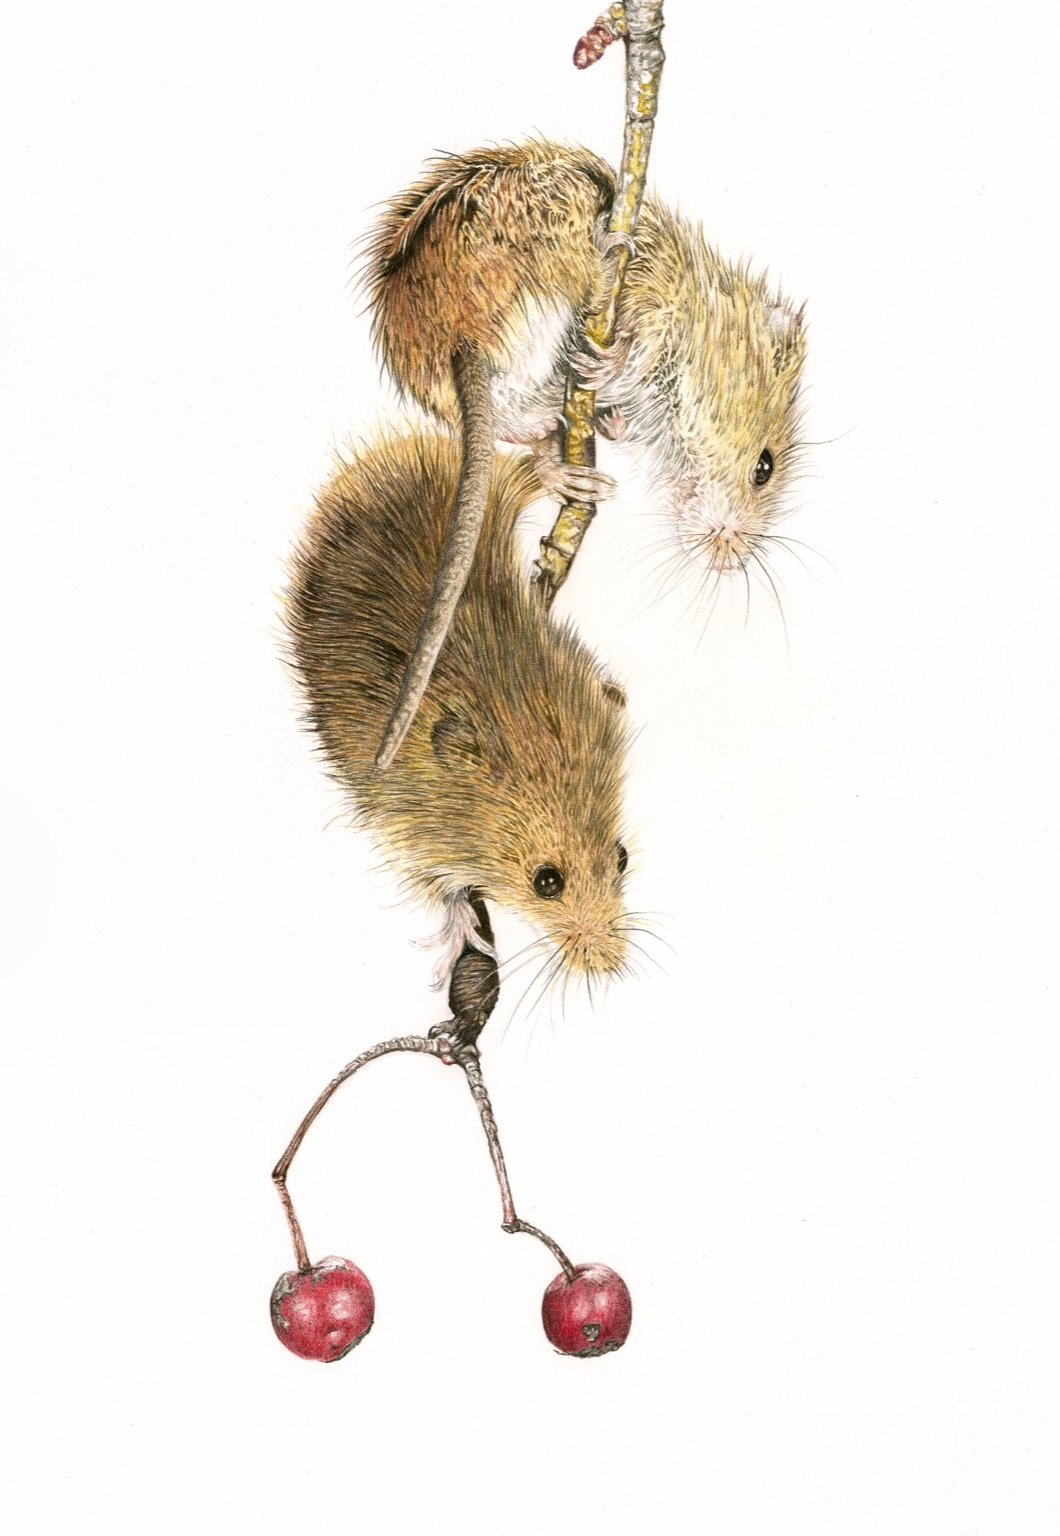 British wildlife art harvest mice